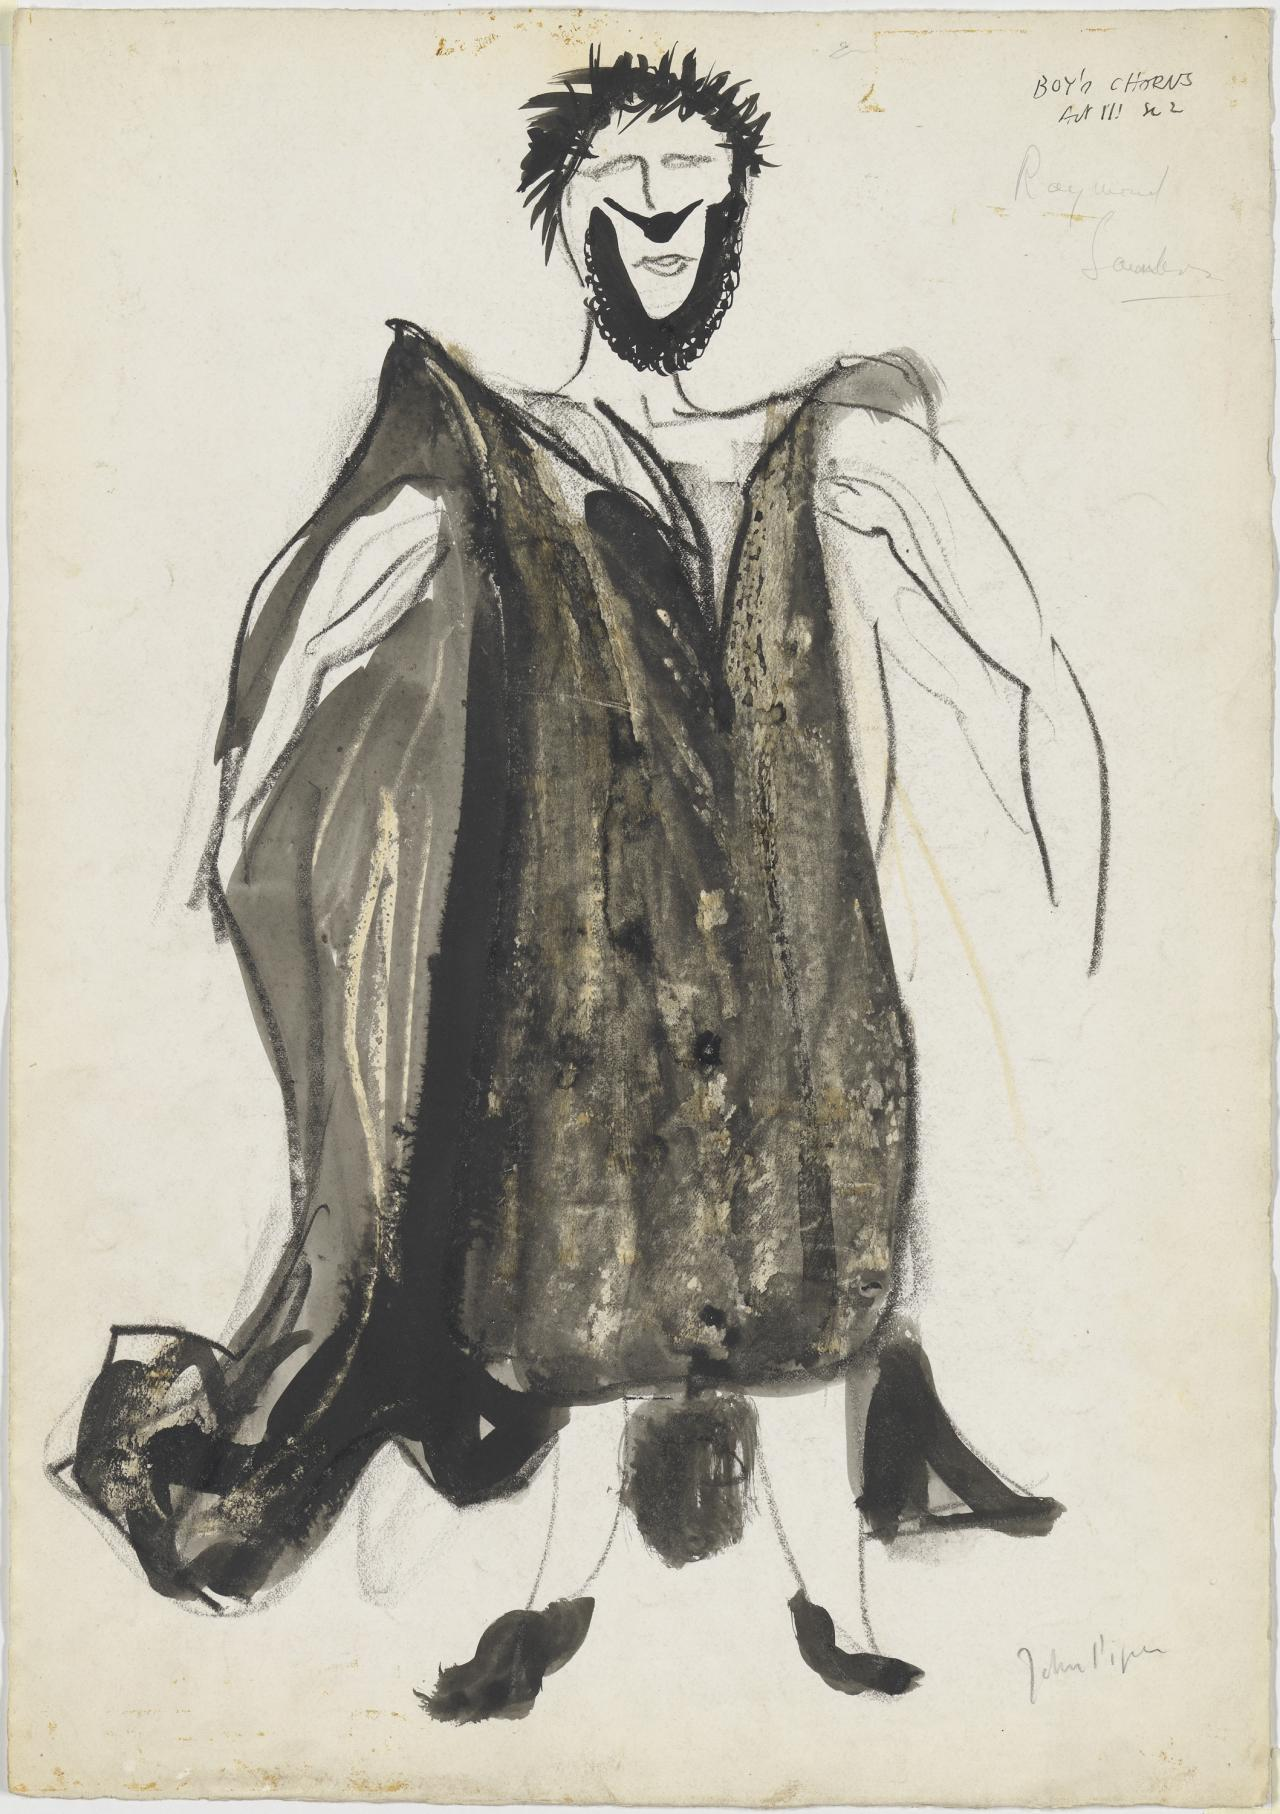 Costume design for the boys chorus